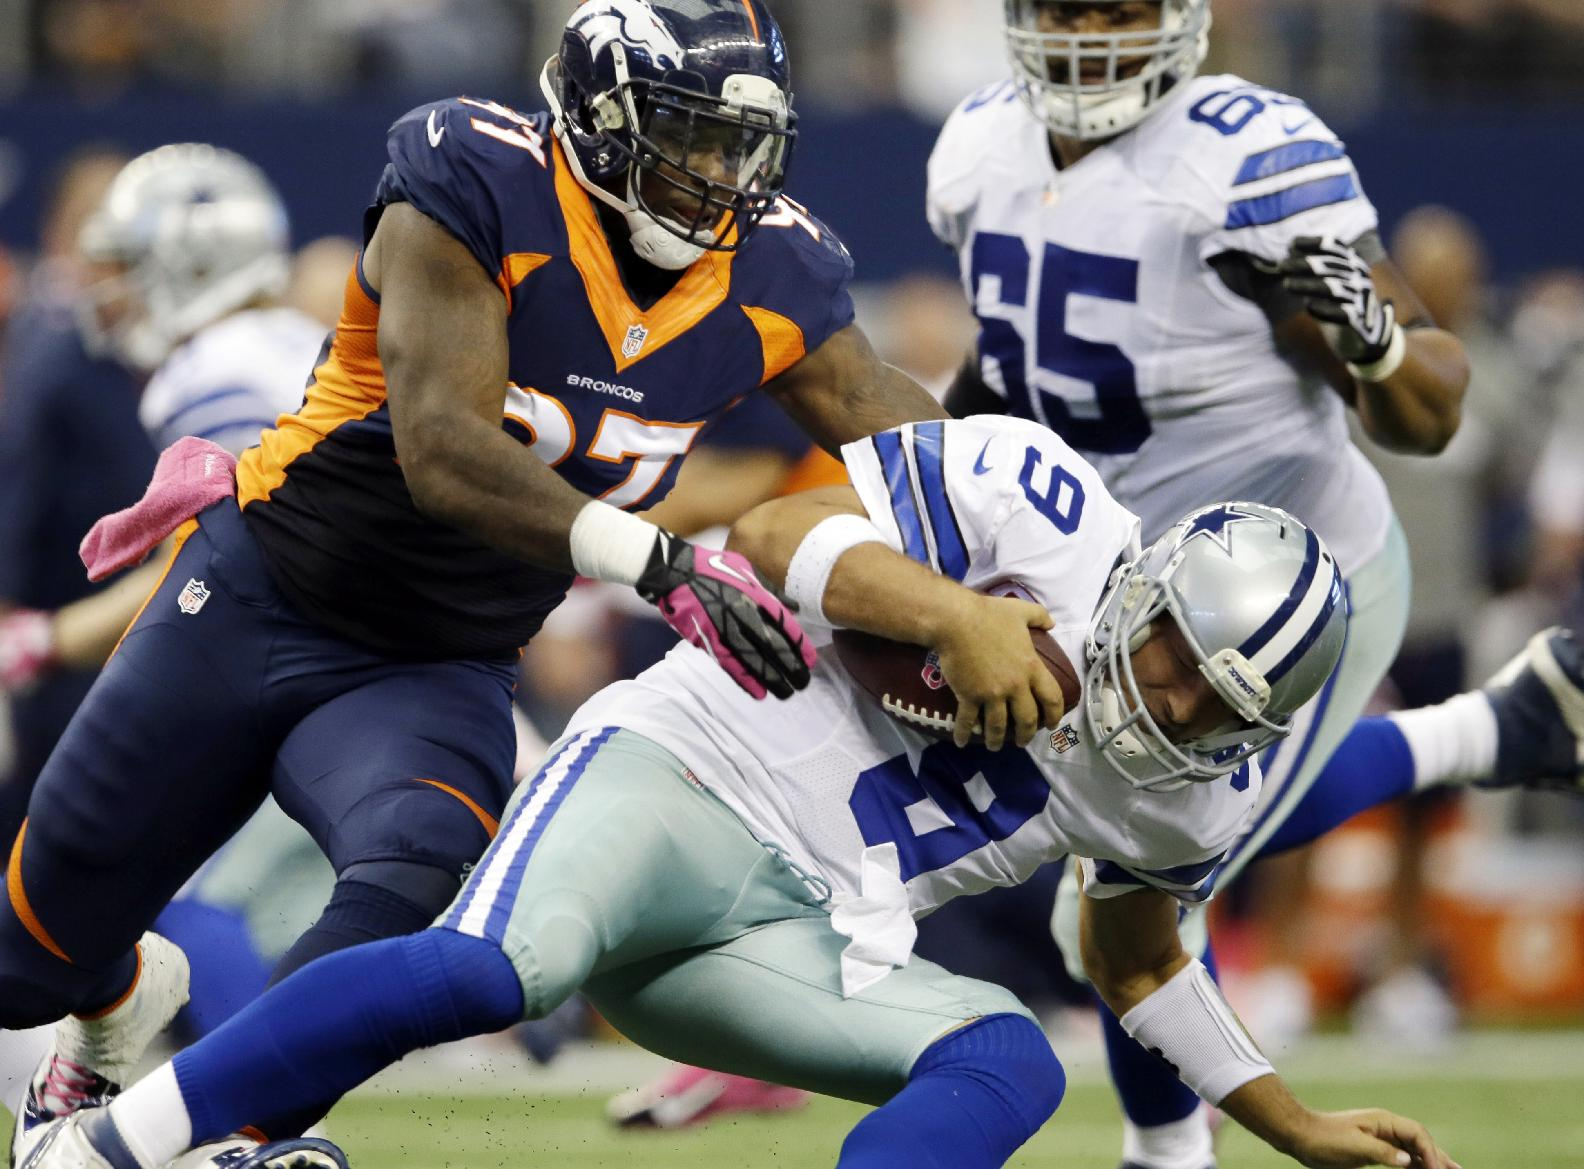 Denver Broncos defensive end Malik Jackson, left, takes down Dallas Cowboys quarterback Tony Romo (9) during the second quarter of an NFL football game Sunday, Oct. 6, 2013, in Arlington, Texas